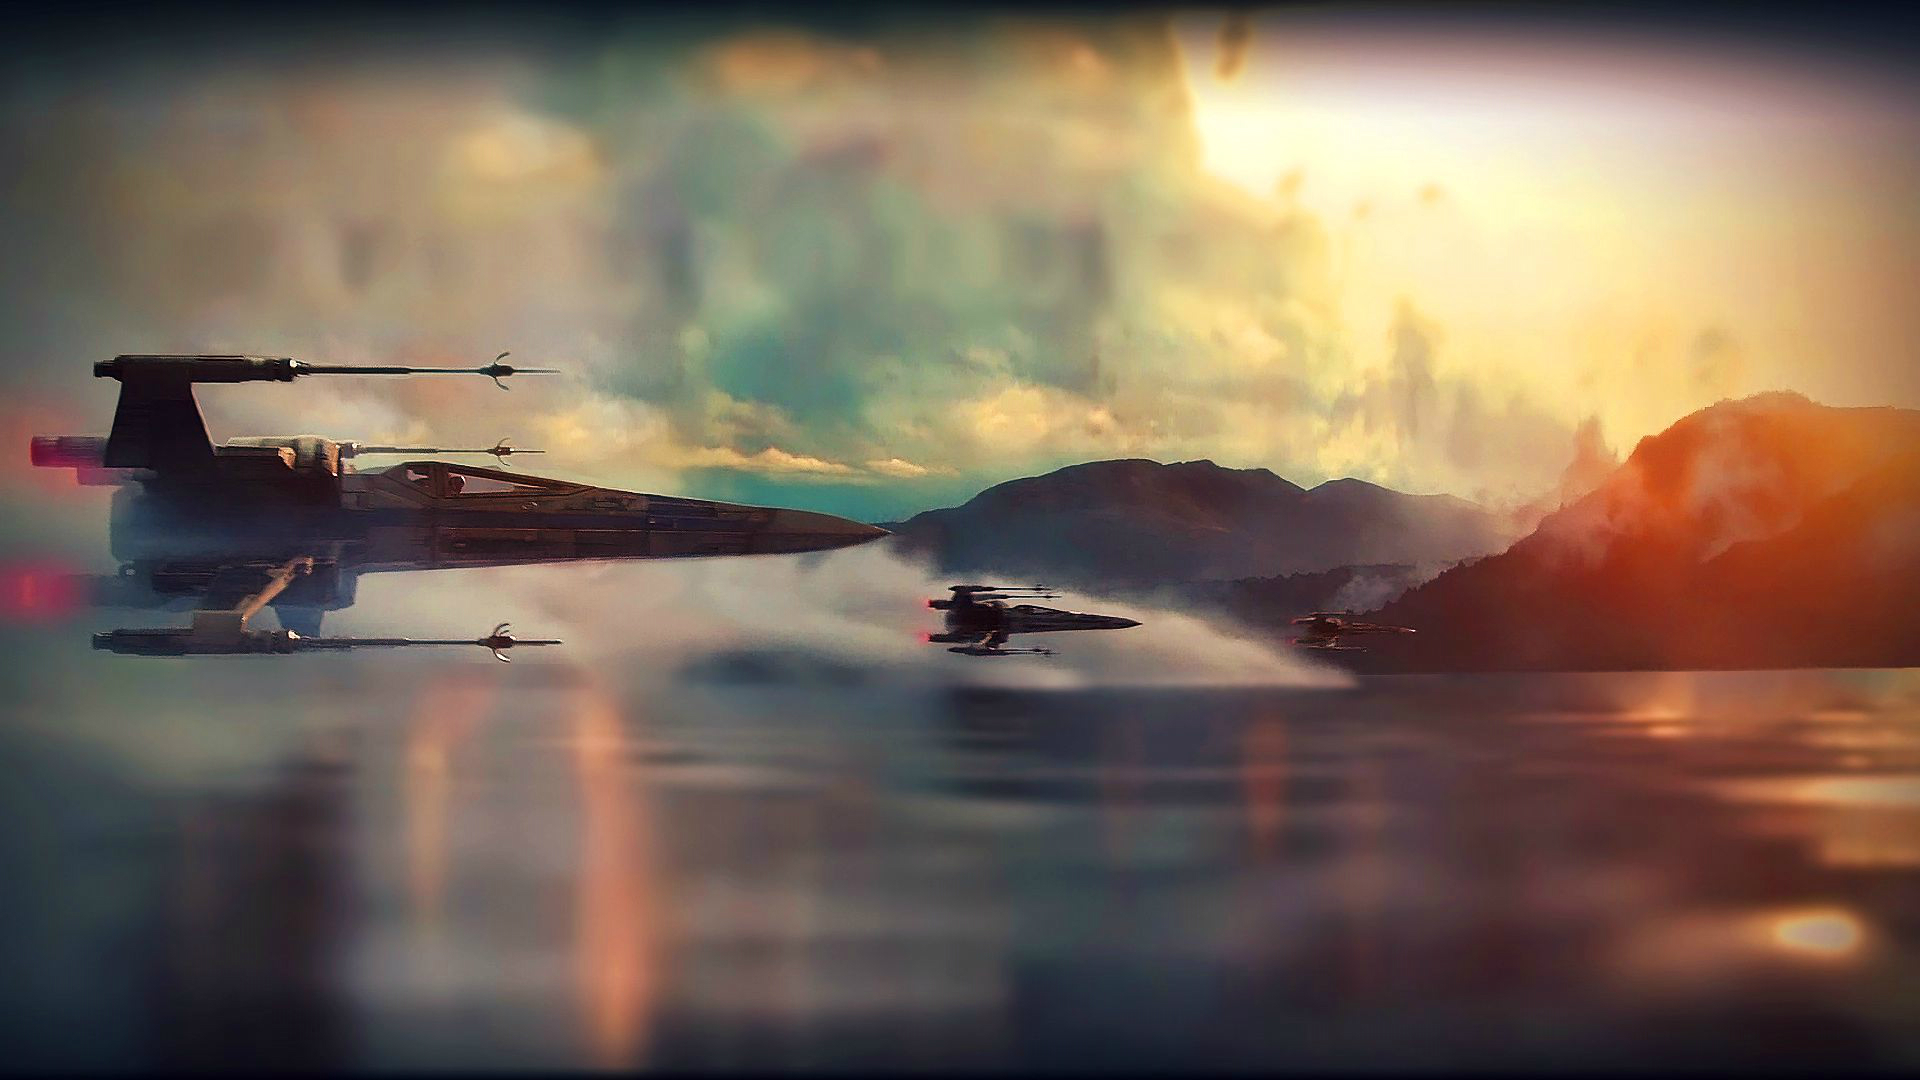 Star Wars The Force Awakens Wallpaper: Star Wars Episode VII: The Force Awakens HD Wallpaper